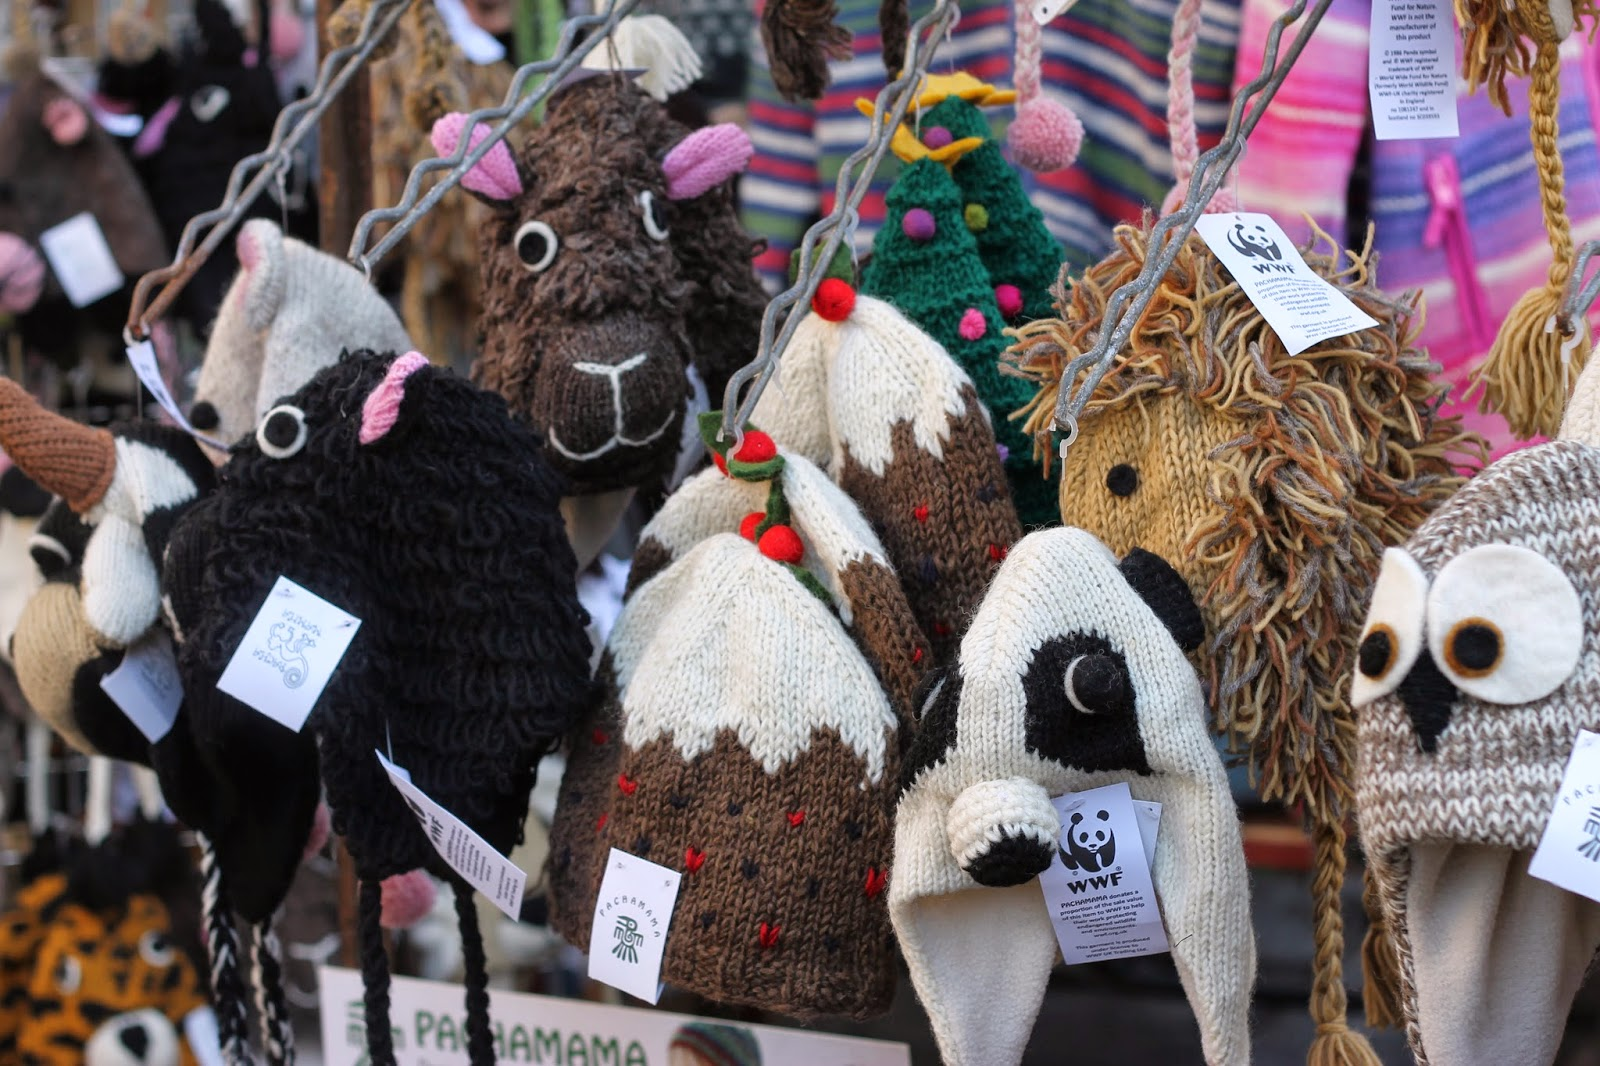 Much Wenlock Christmas market